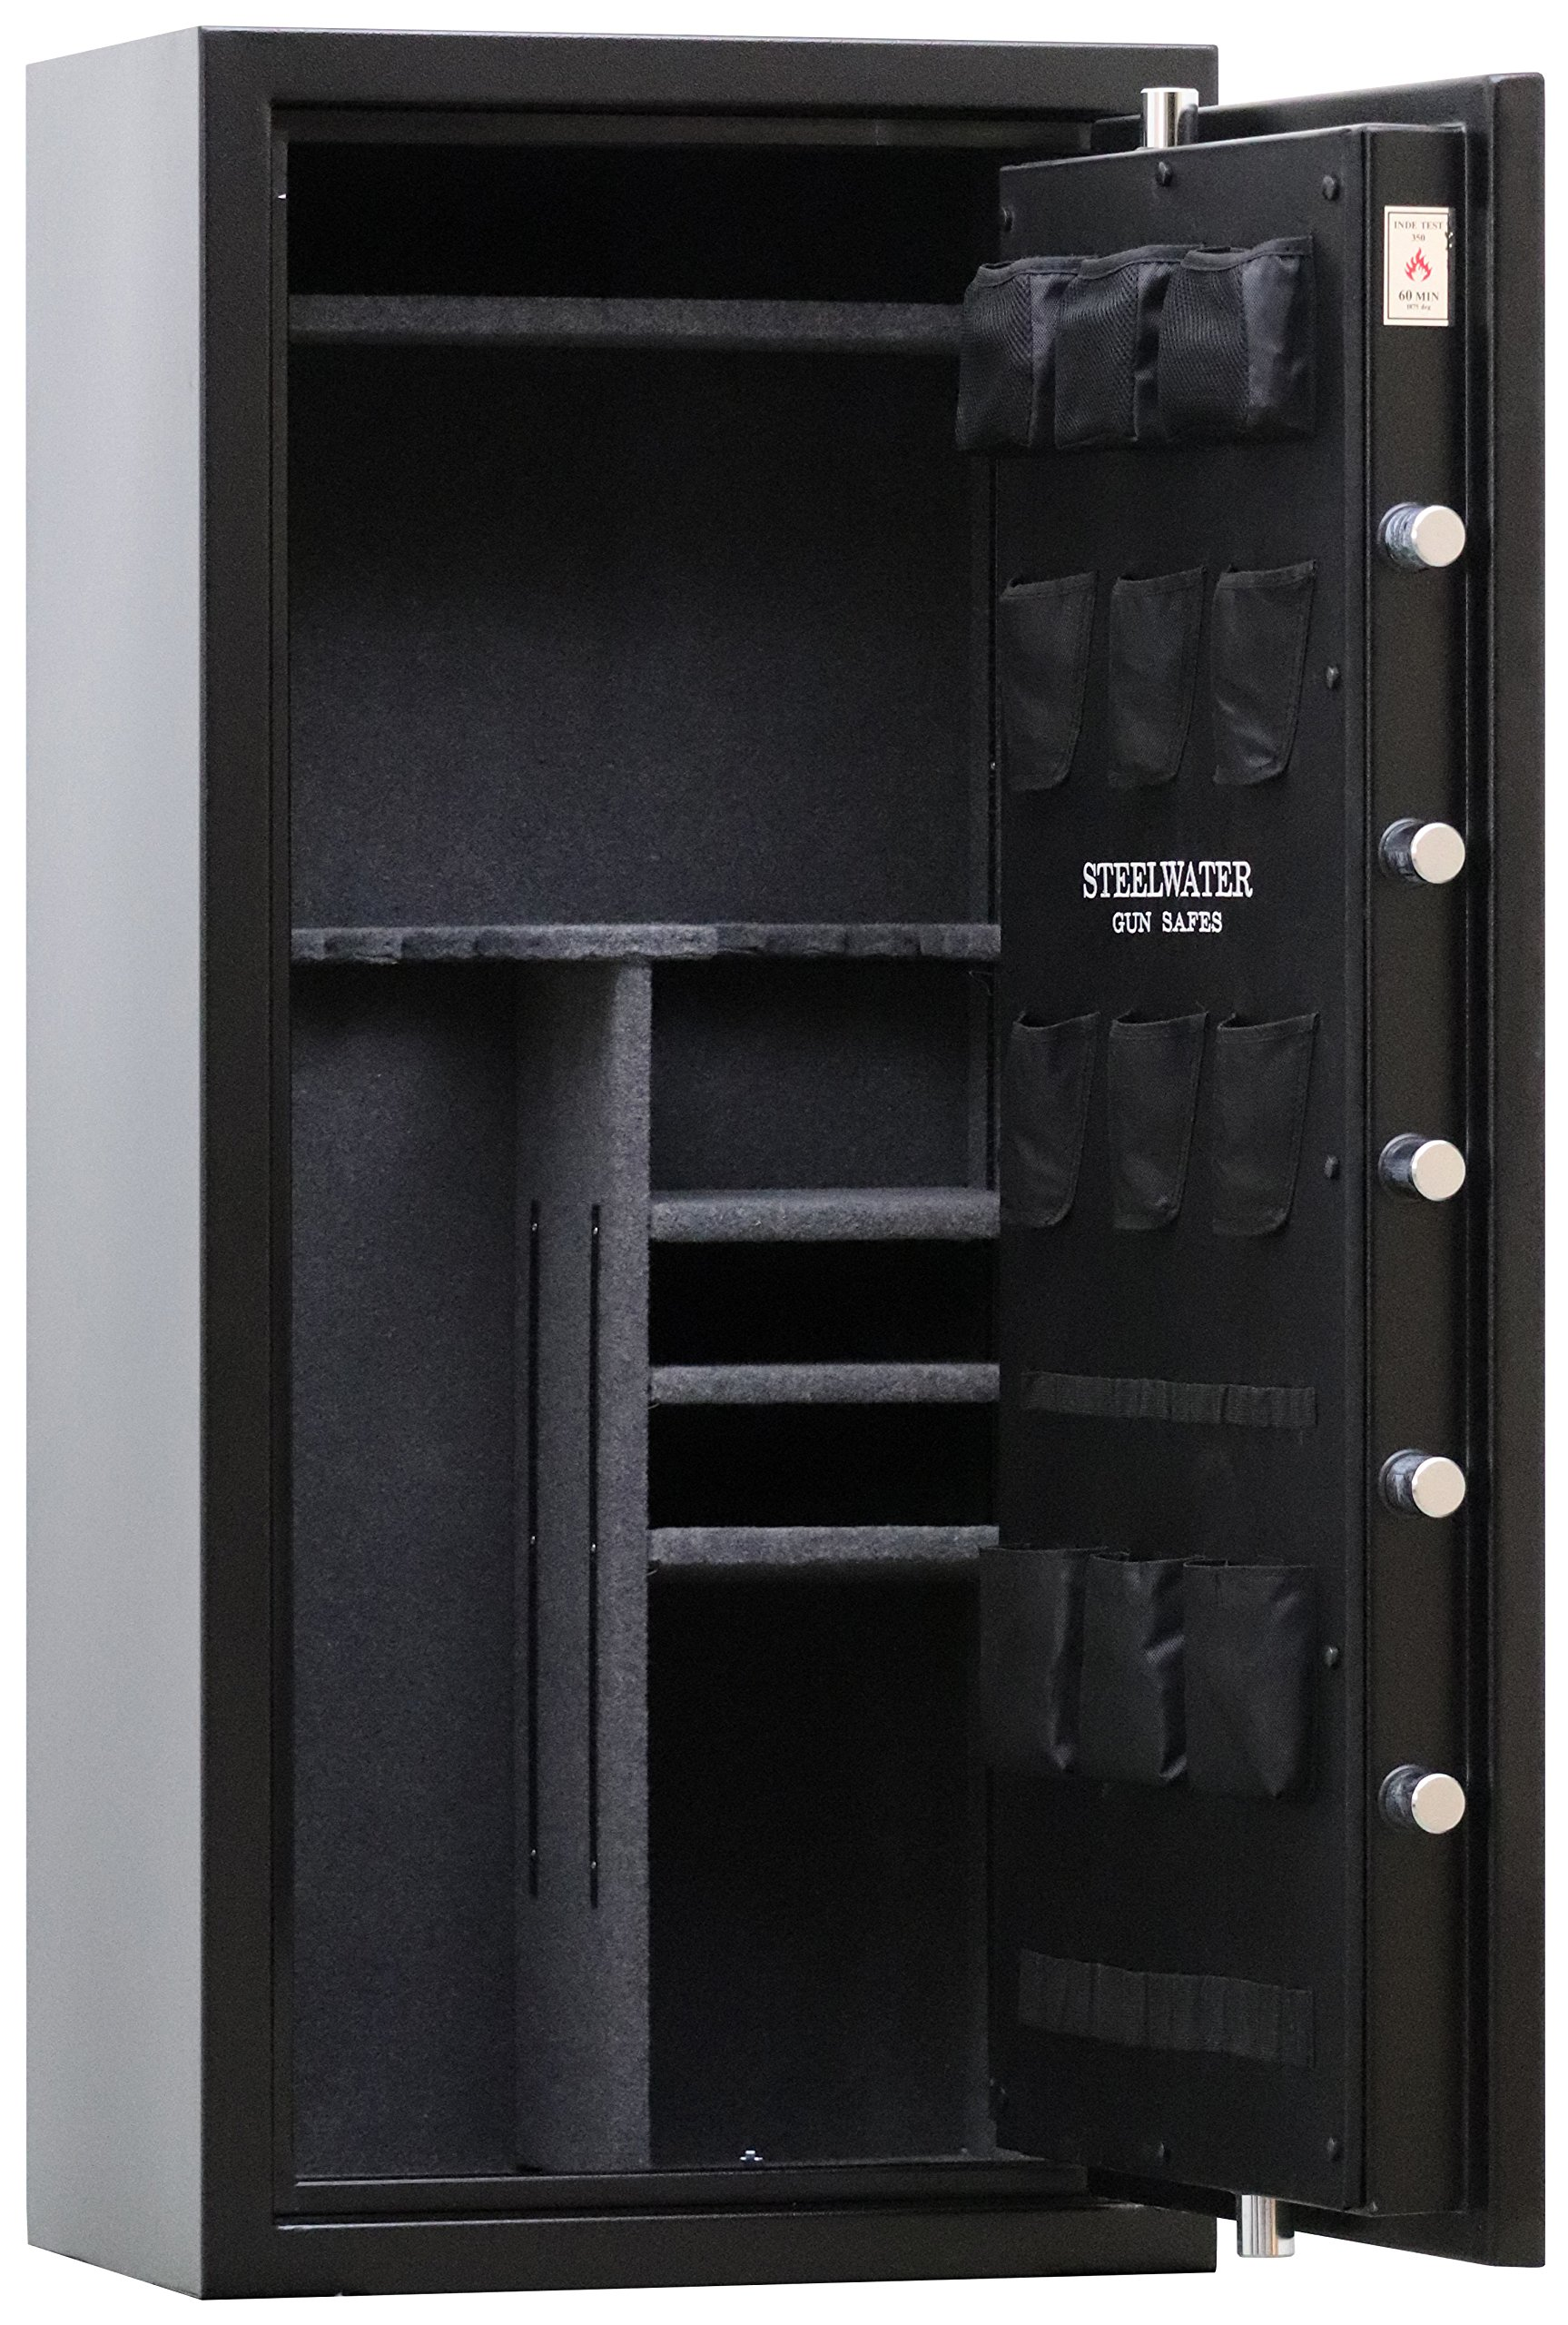 New and Improved Steelwater Heavy Duty 20 Long Gun Fire Protection for 60 Minutes AMSW592818-blk by Steelwater Gun Safes (Image #4)